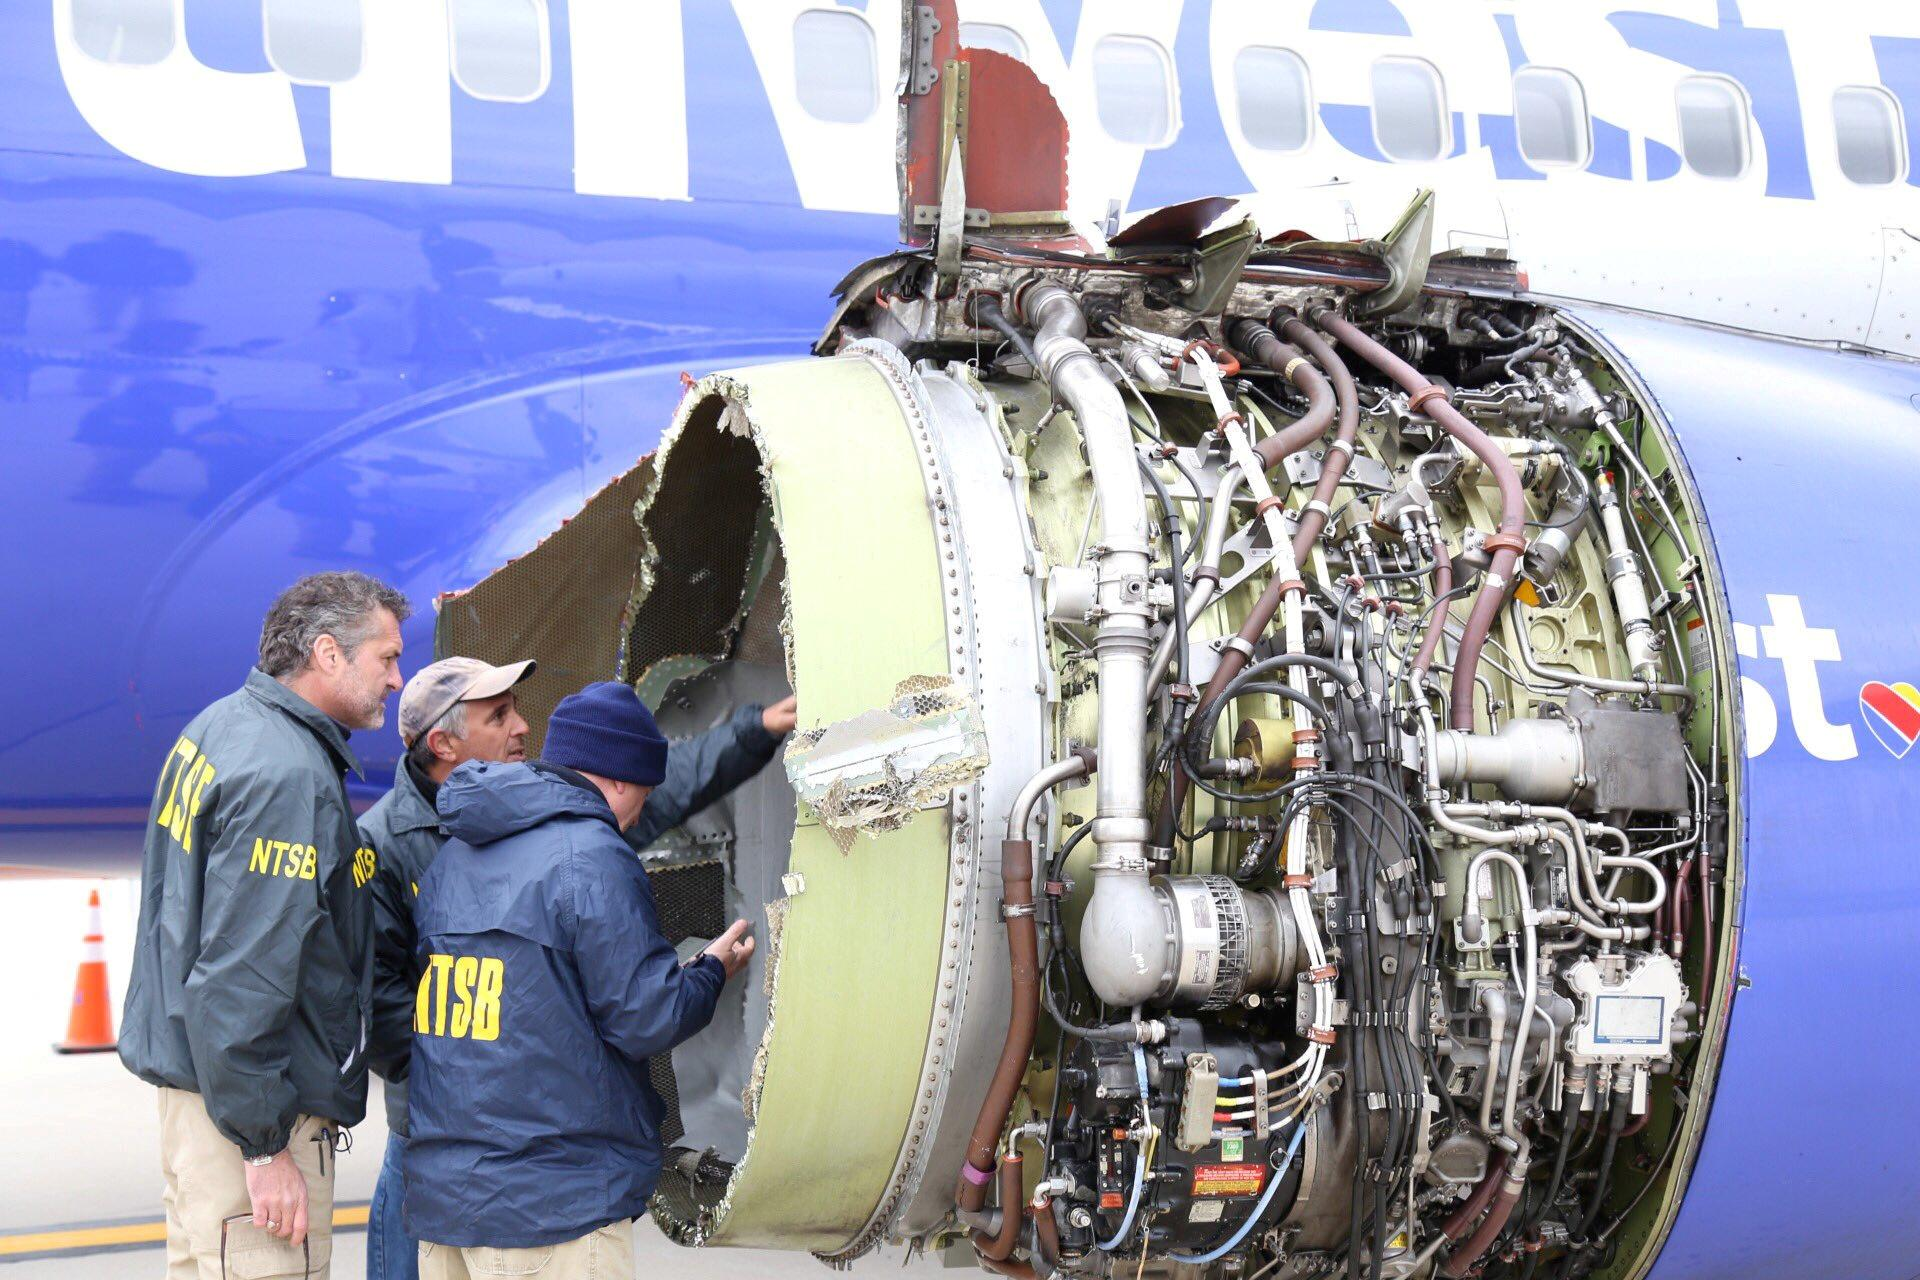 Passenger Sues Southwest Airlines For PTSD